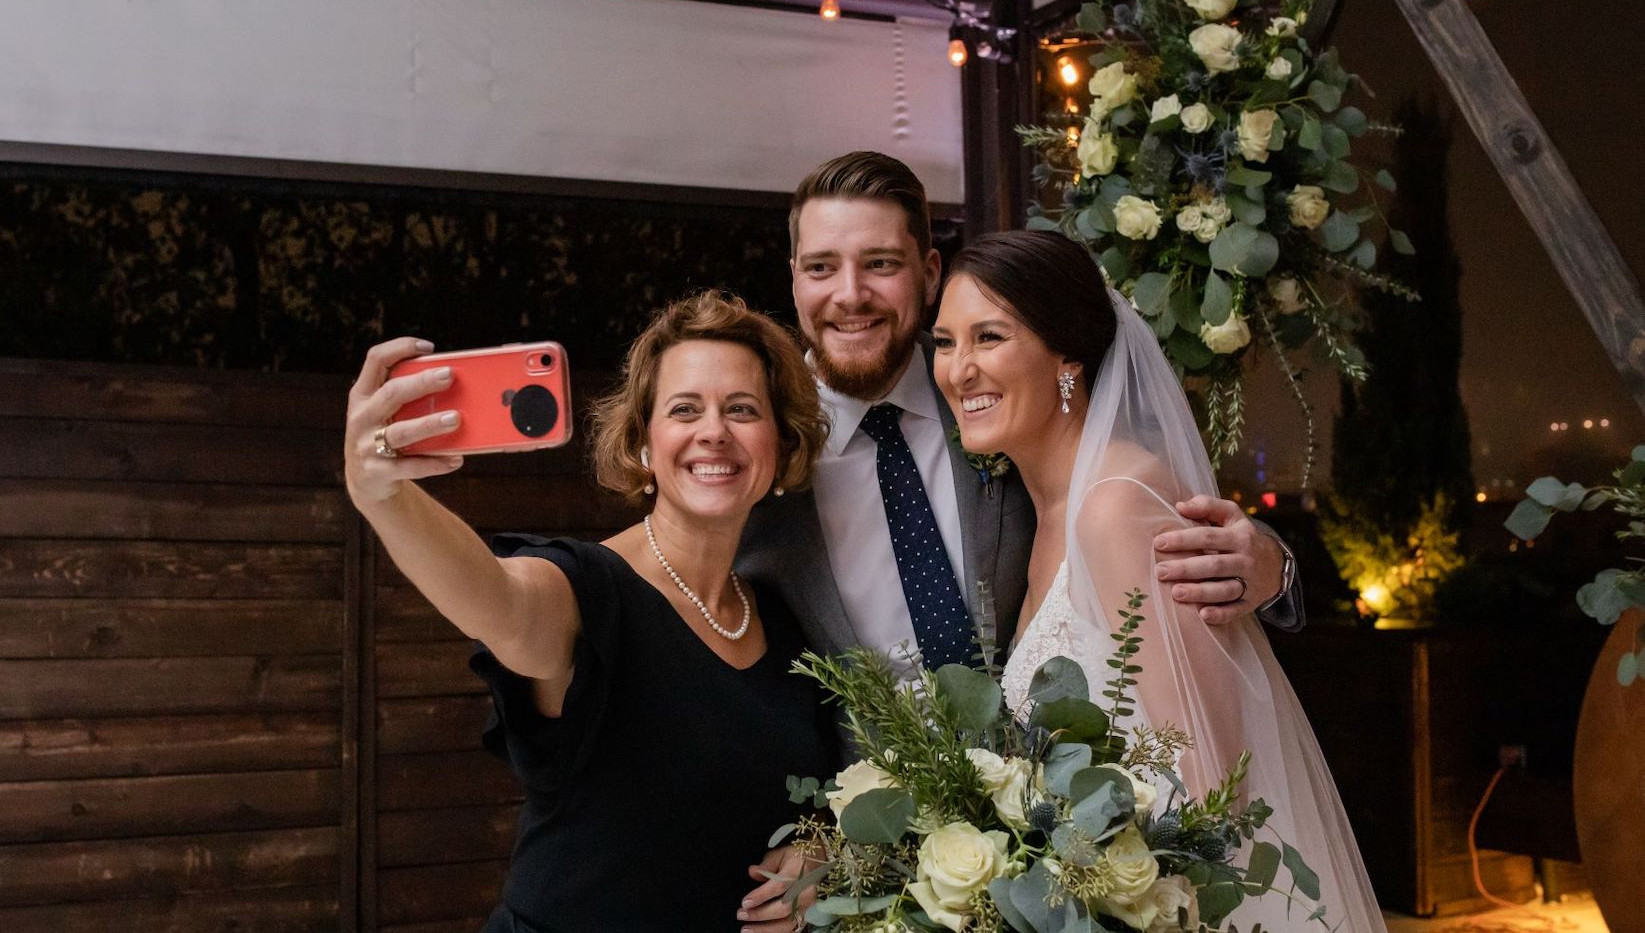 Photo with the Bride and Groom